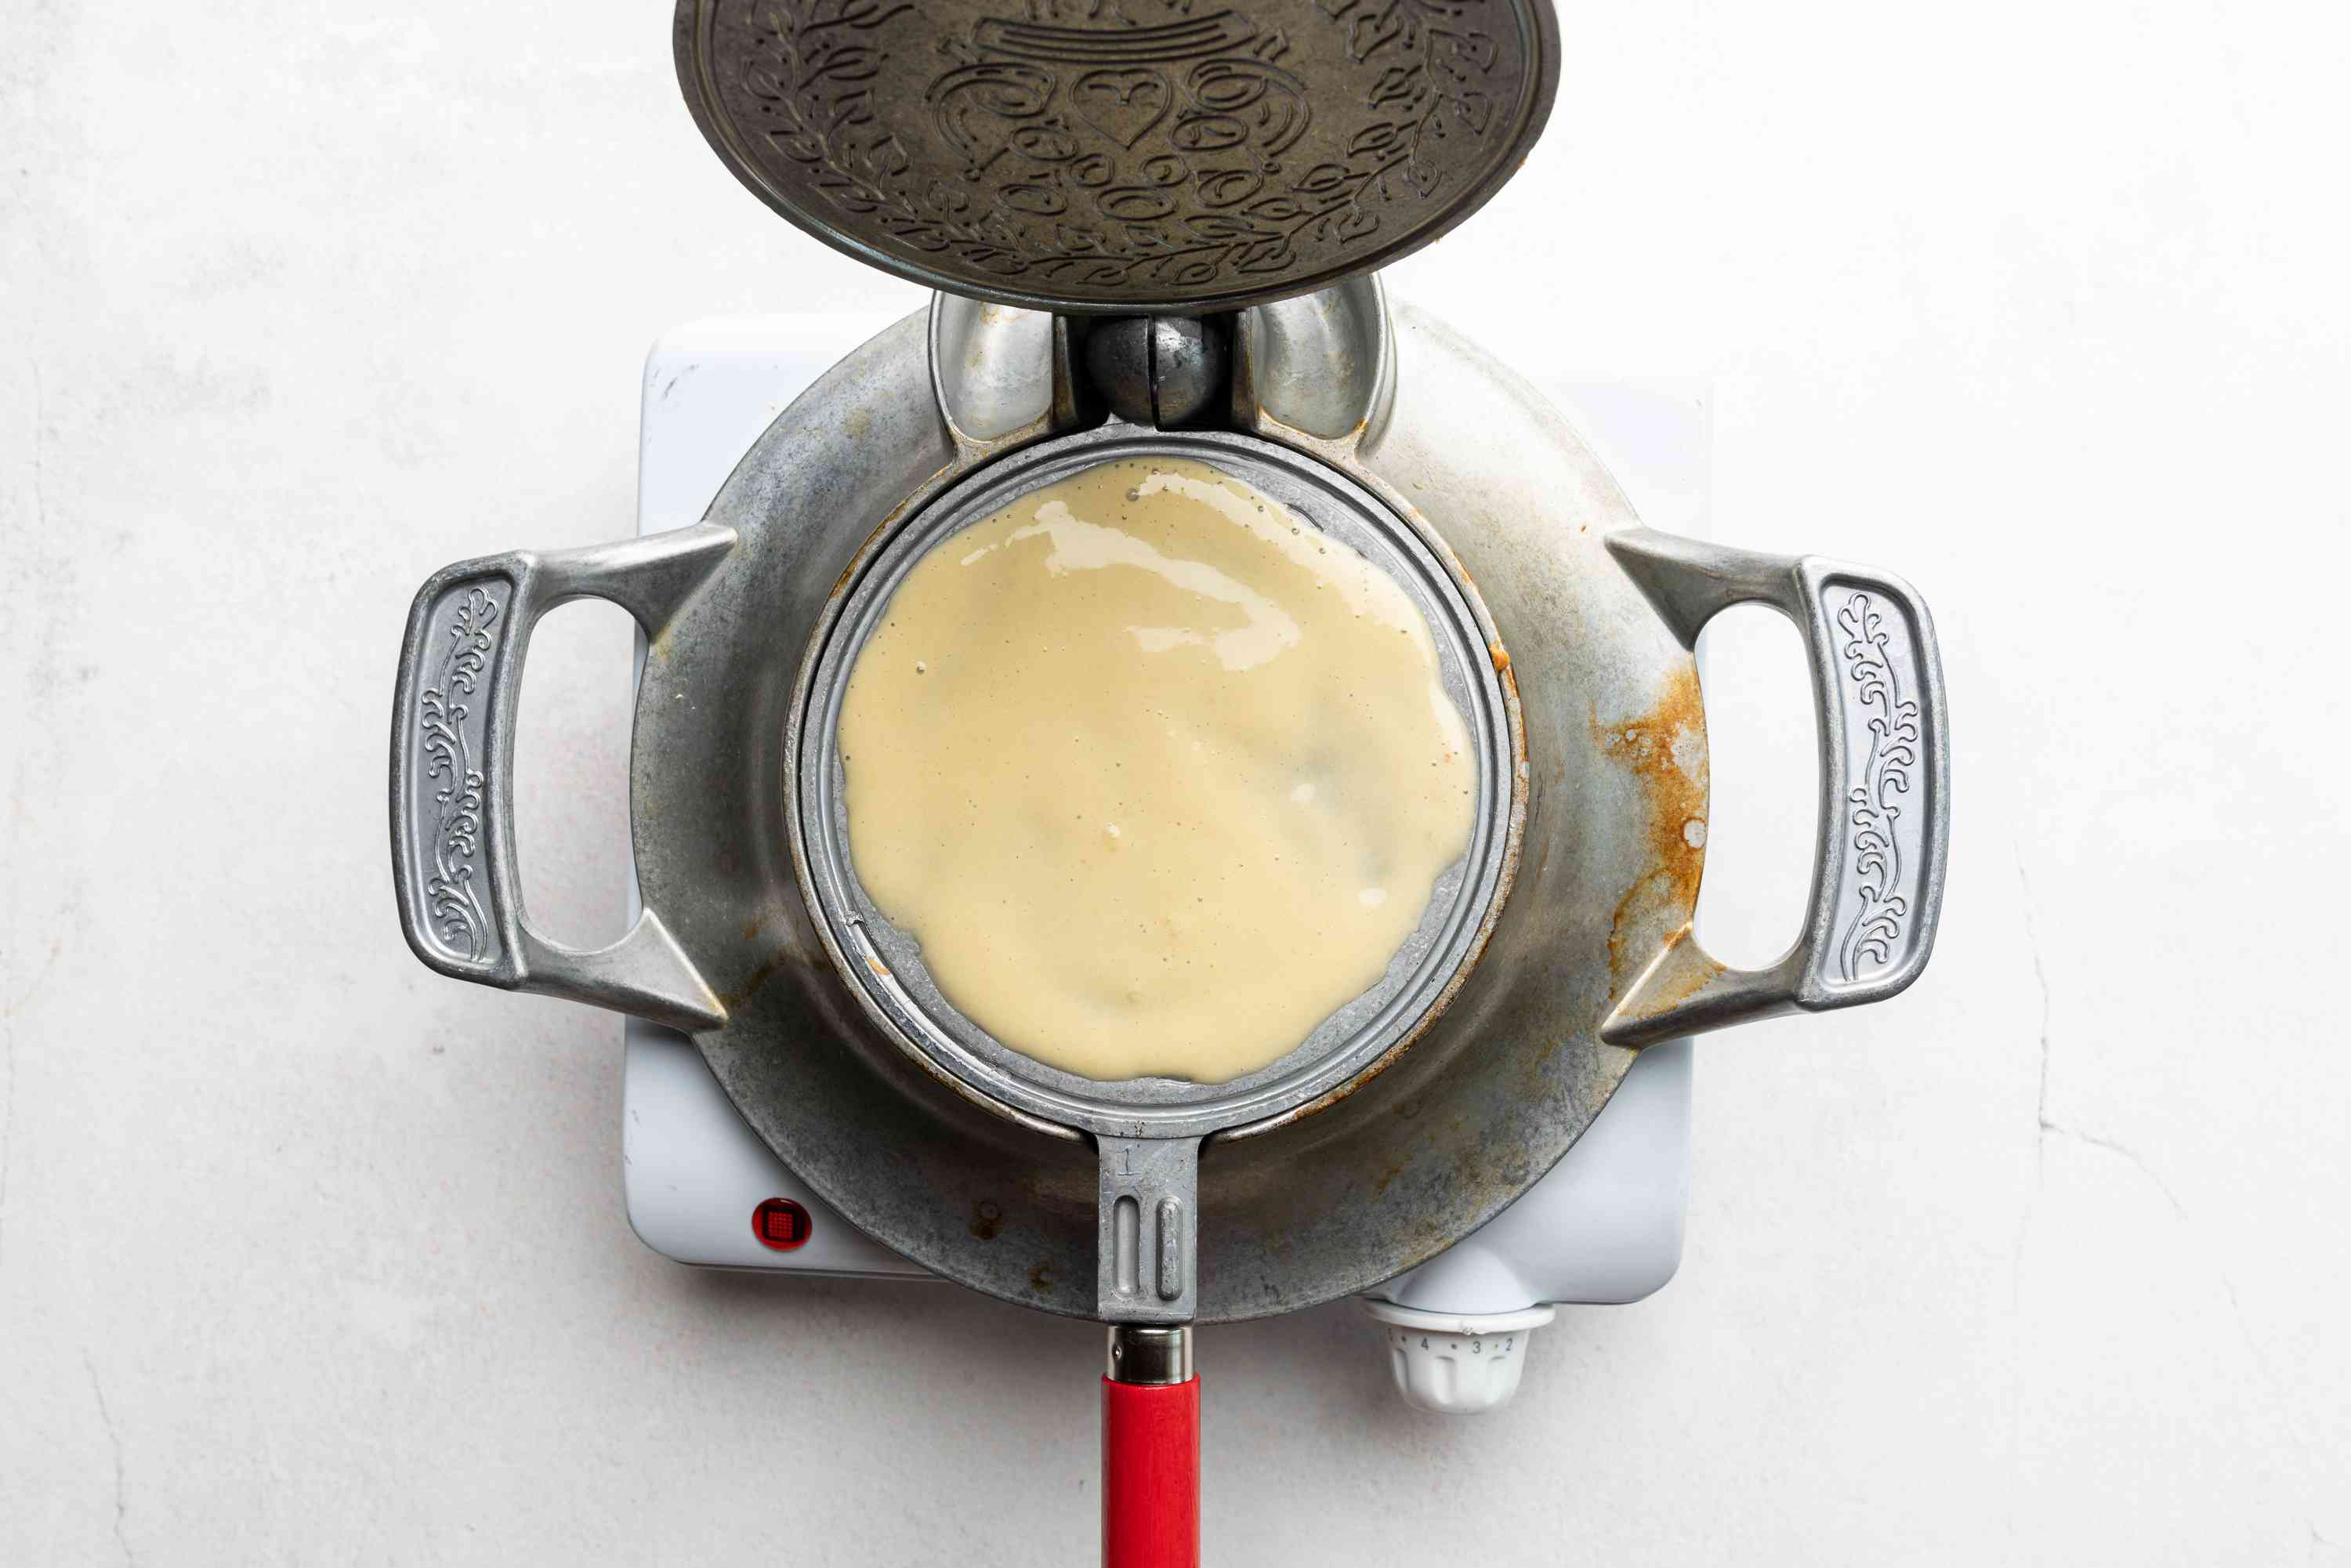 Polish Wafle Wafer Cookies cooking